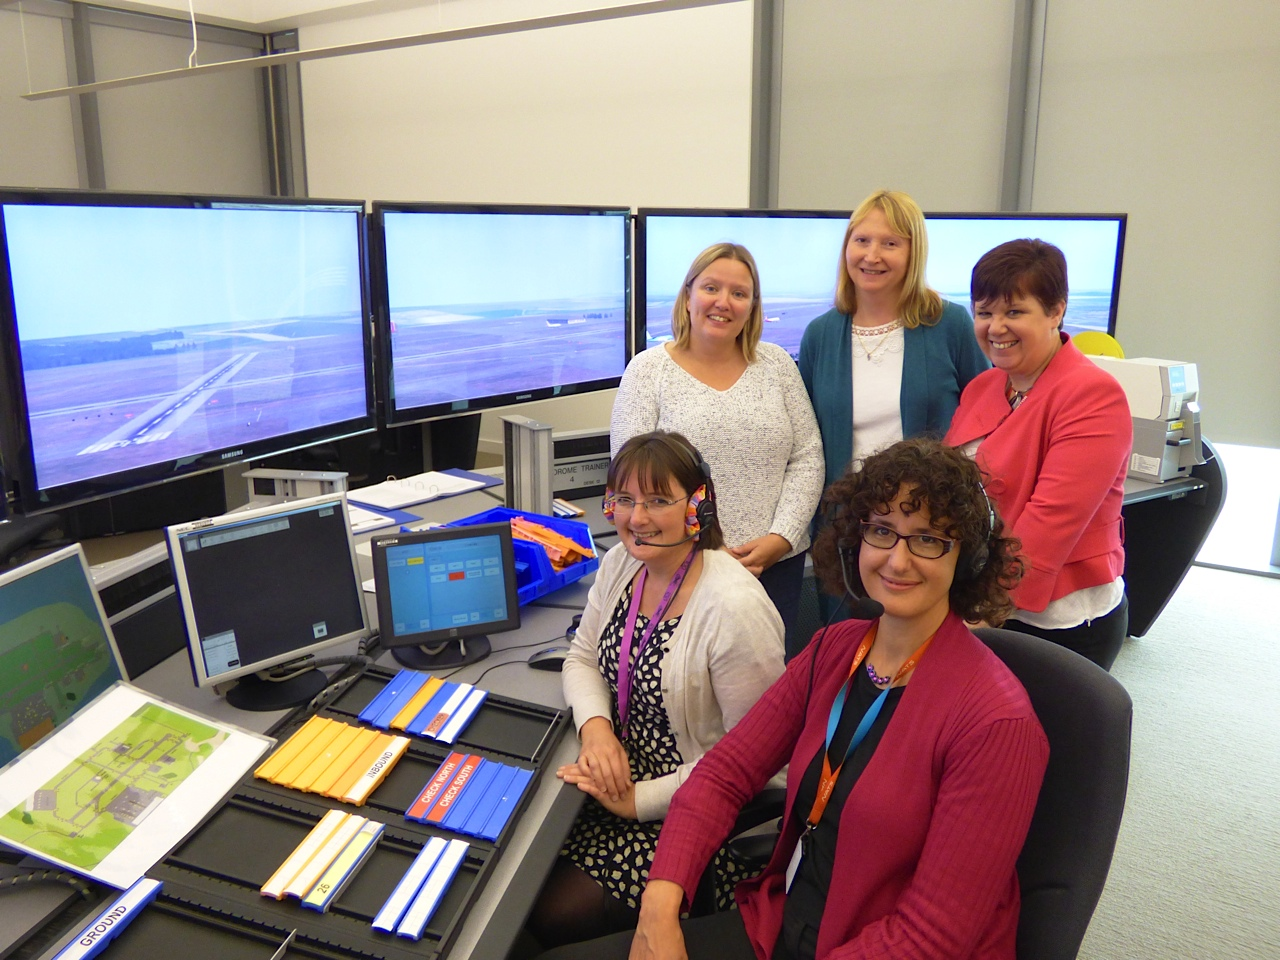 Front: Angela Barski, NATS Training Internal Standards Officer, Rachel Bovill, Qualification Development Manager NOCN, Standing:  Ann Maxwell, ADI Course Manager, Sandy Pickford, NATS Training Coordinator, Jane Jones, NOCN Director of Business Development.